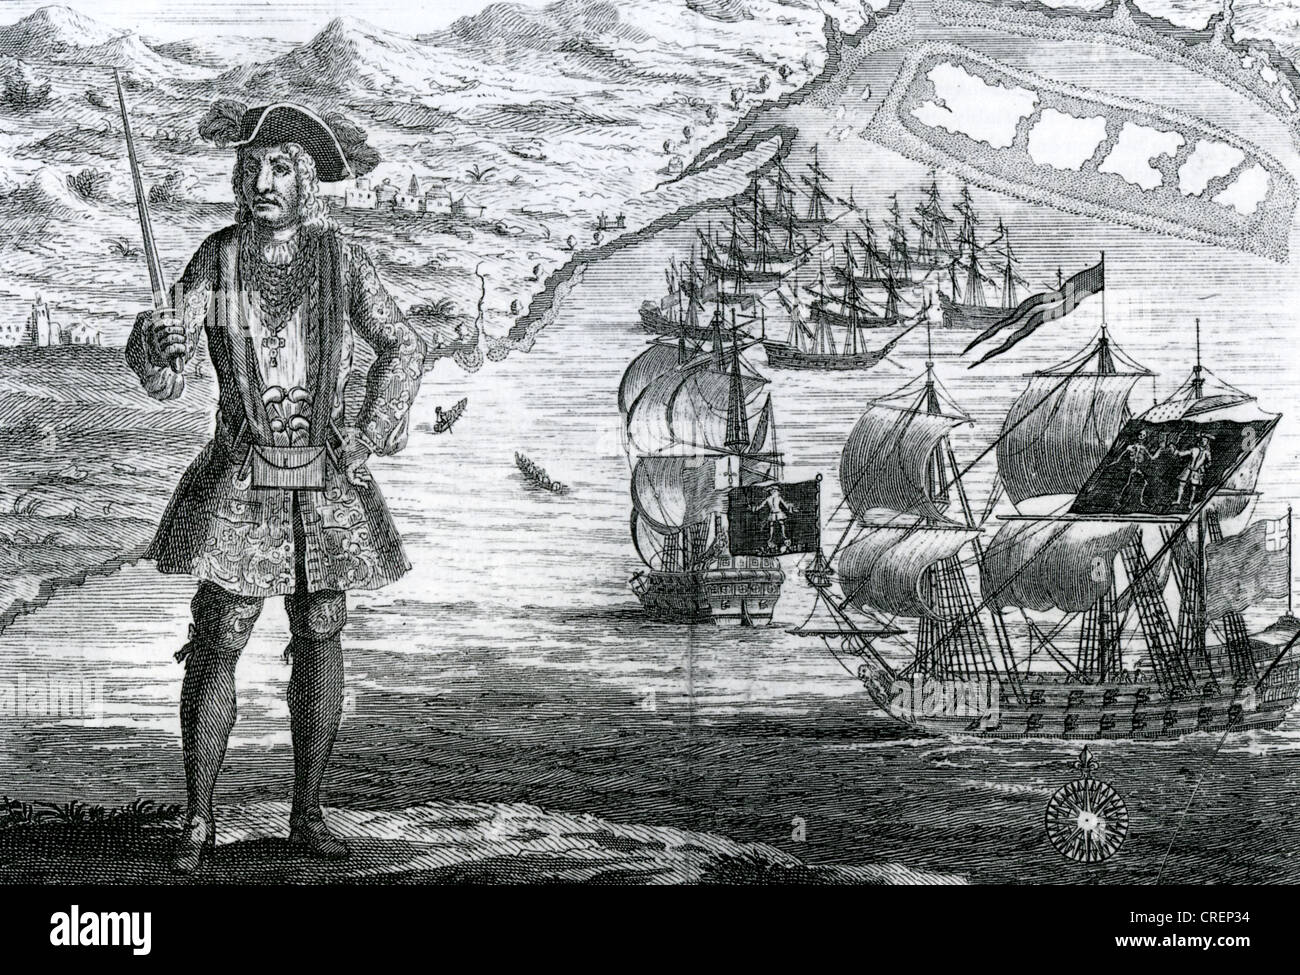 BARTHOLOMEW ROBERTS (1682-1722) aka Black Bart - Welsh pirate at Ouidah on the Guinea coast of Africa in 1722. See - Stock Image